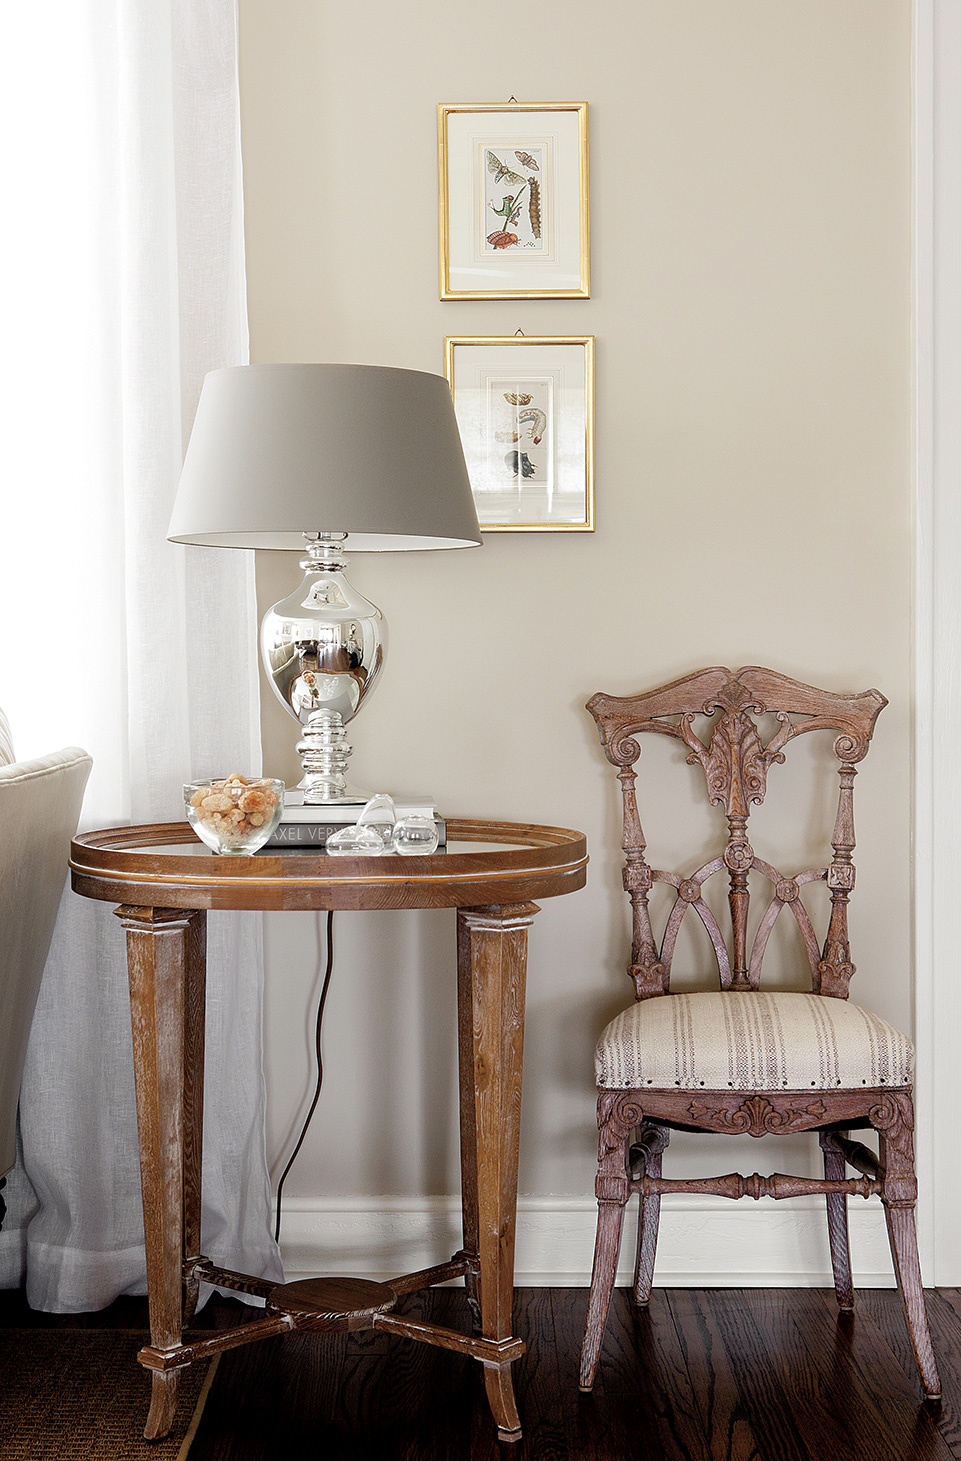 Westwood Hills Bungalow | Amanda Steiner Design | Side Table Lamp and Chair